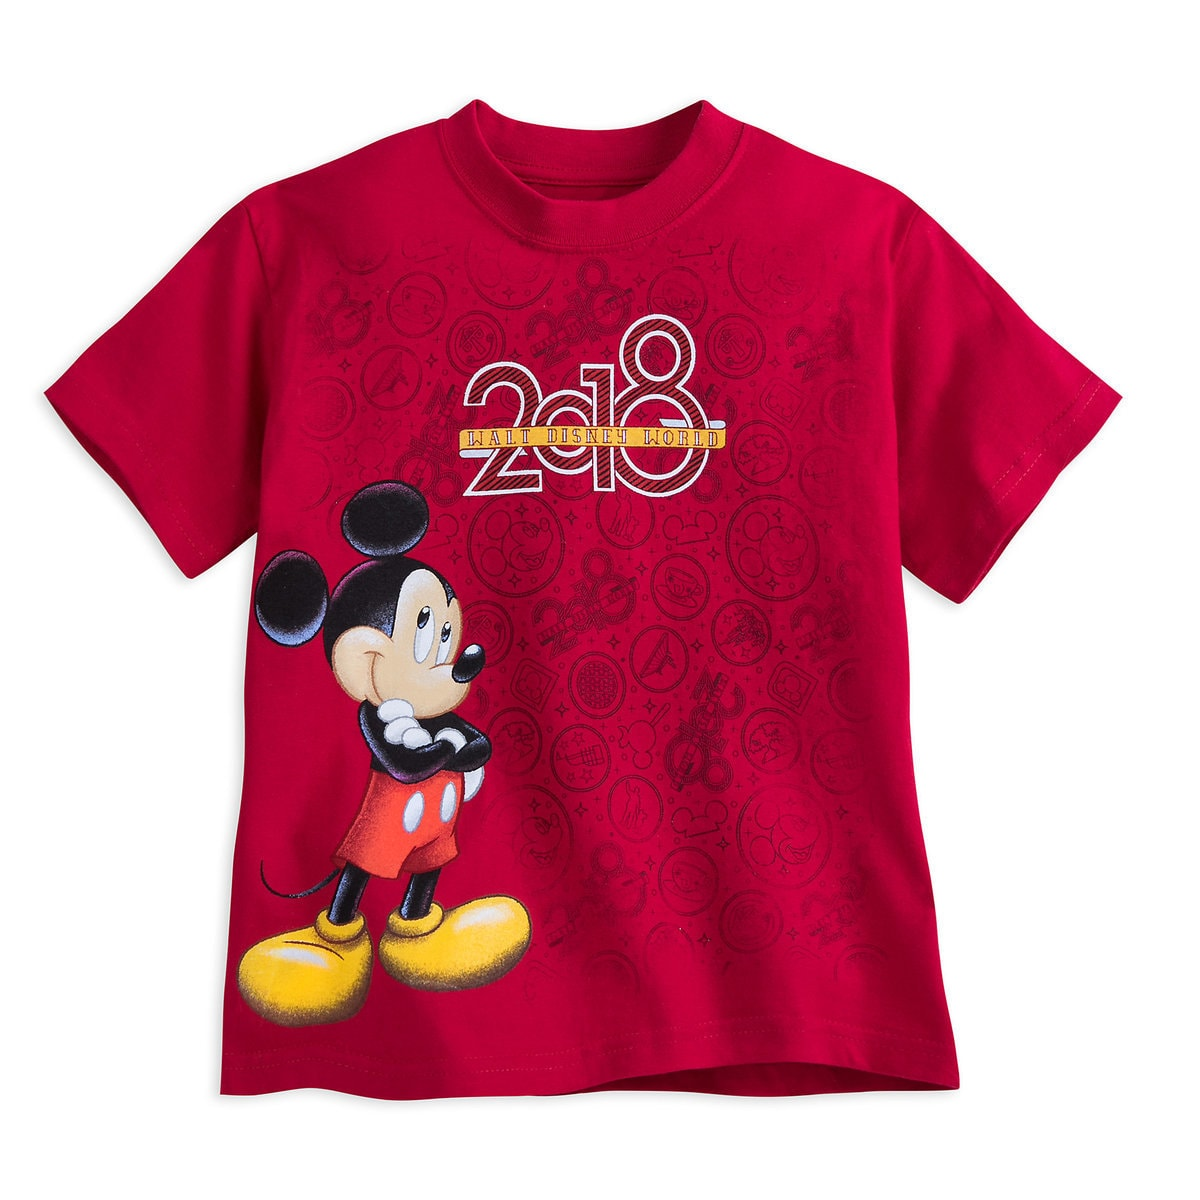 ba3db64d5 Product Image of Mickey Mouse T-Shirt for Kids - Walt Disney World 2018 -